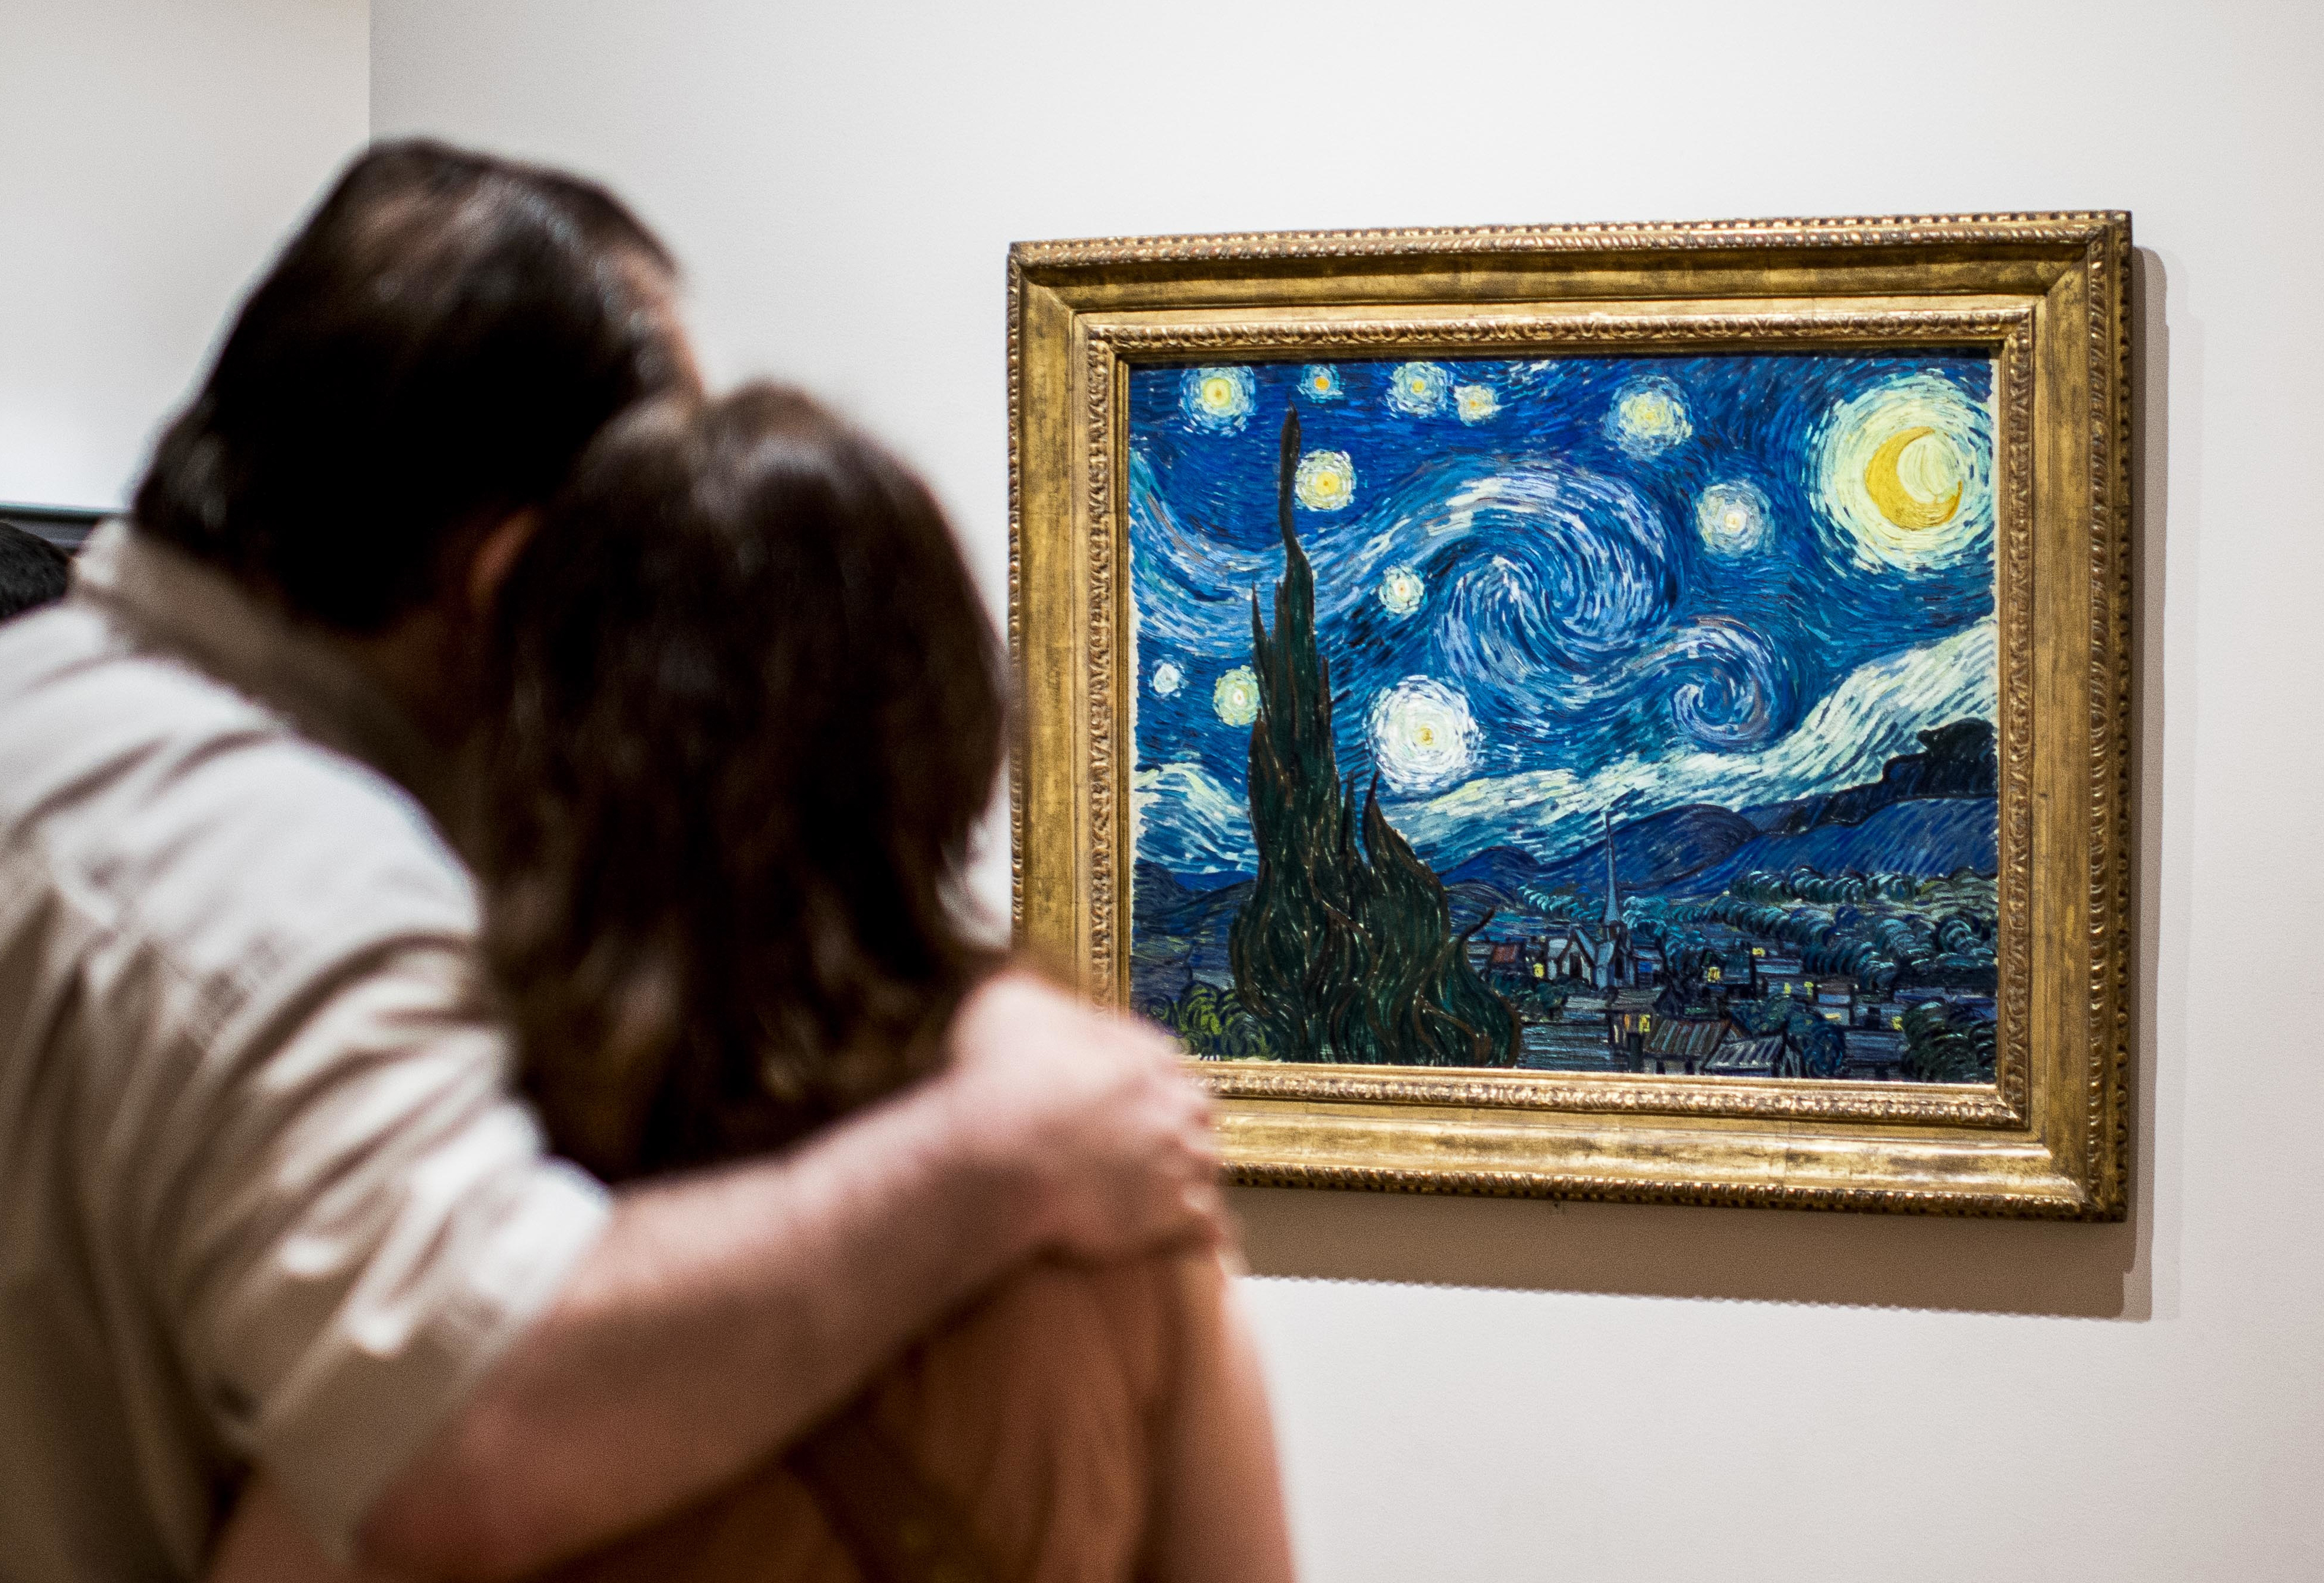 10 most famous paintings Masterpieces we all know and love